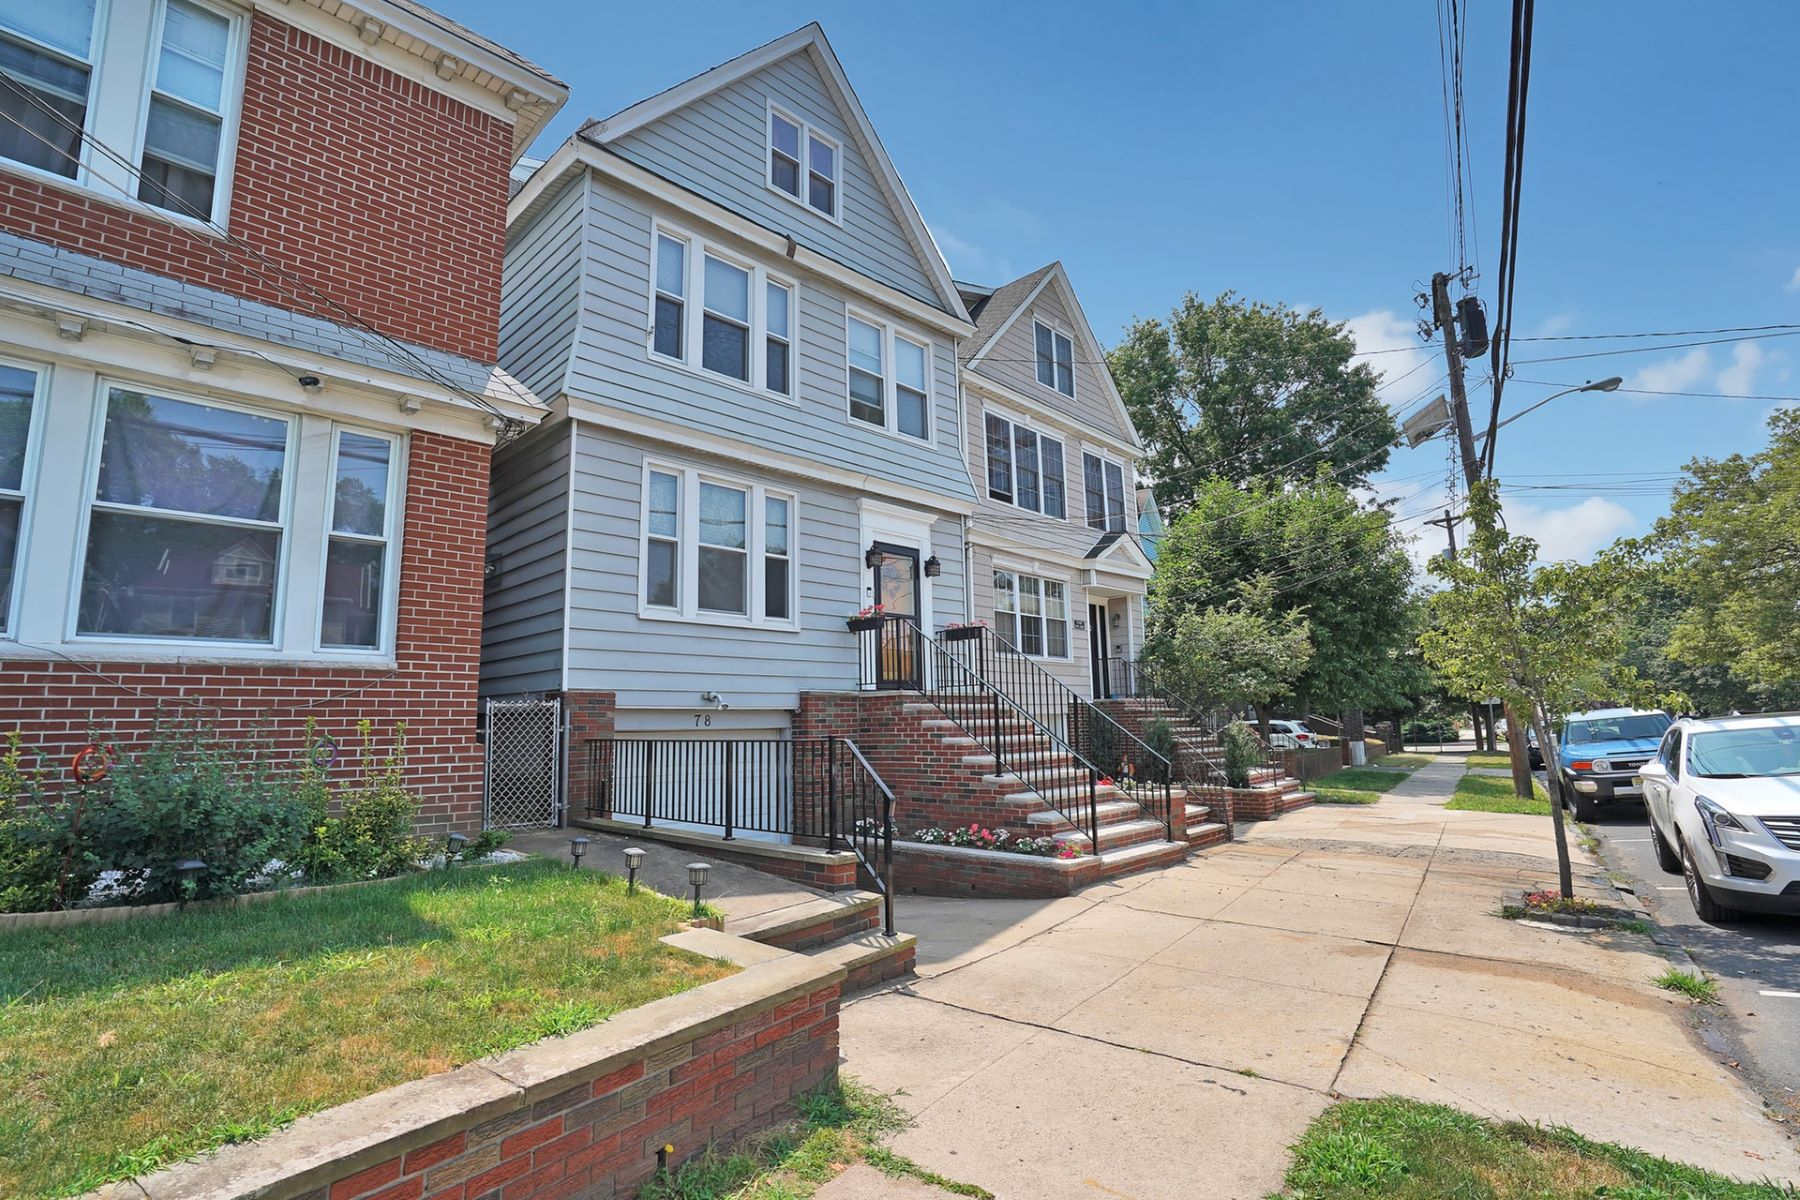 Multi-Family Homes for Sale at Desirable Bergen Point Location! 78 West 5th St Bayonne, New Jersey 07002 United States